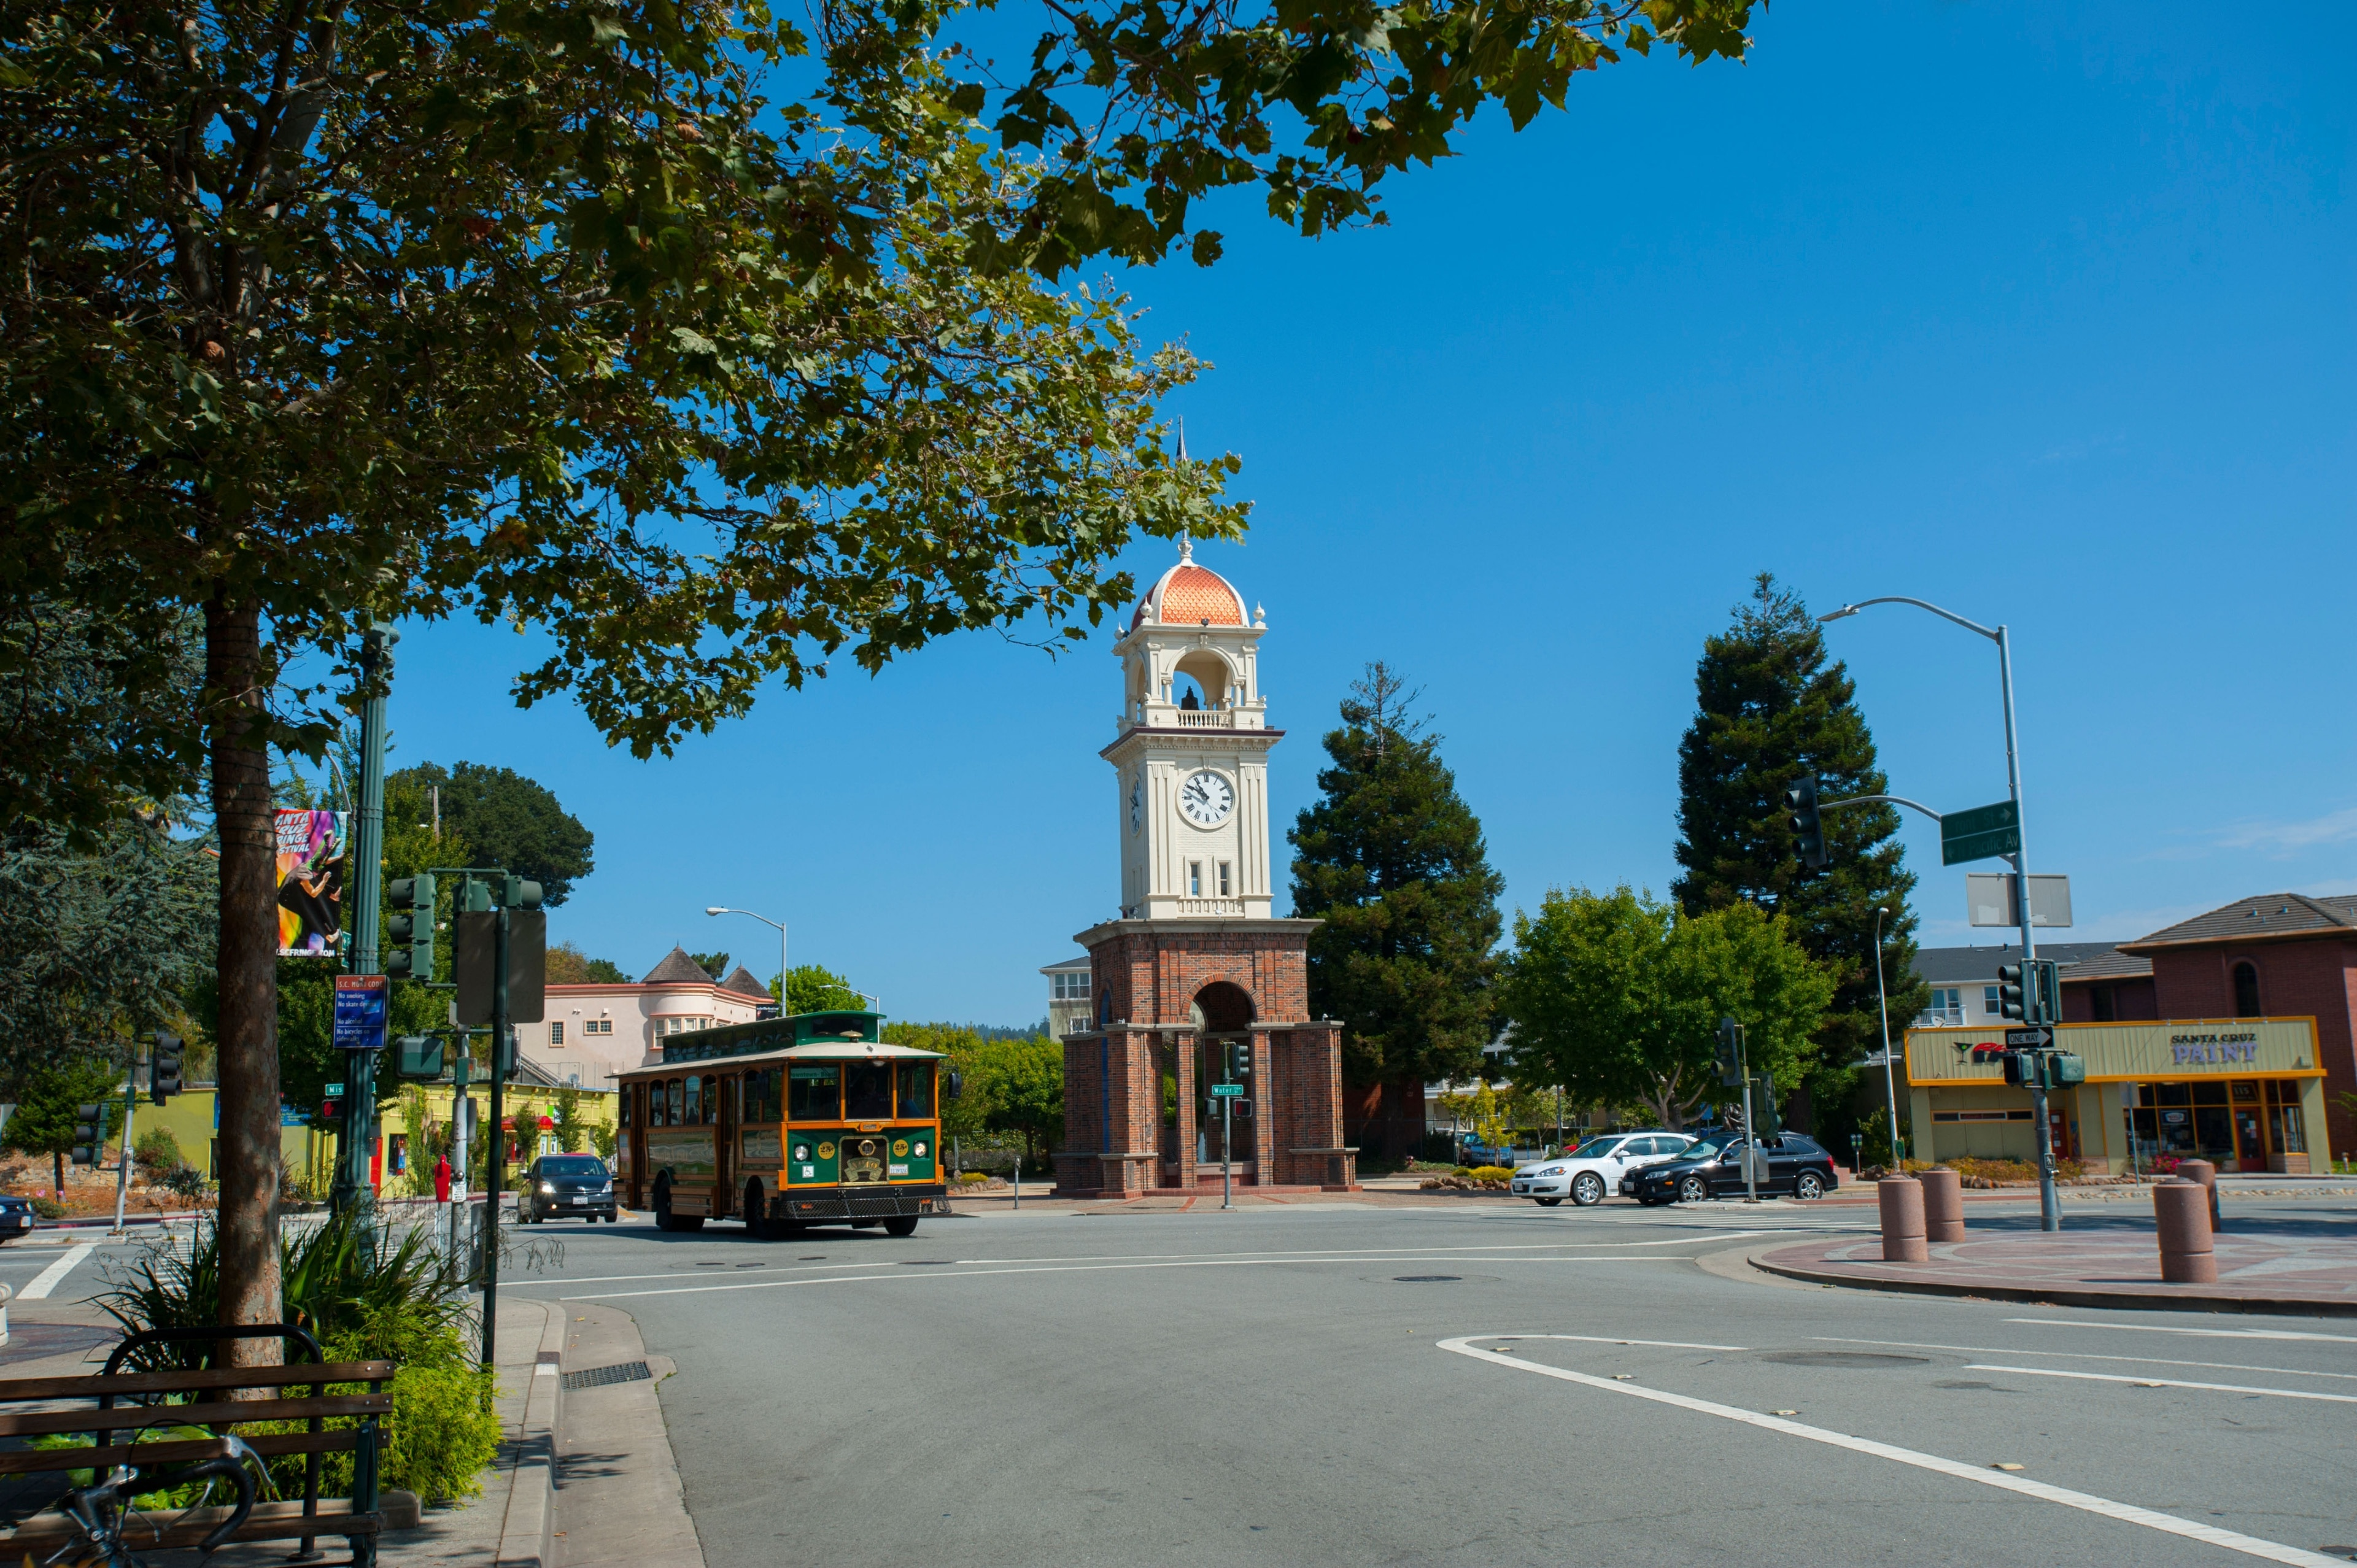 During your visit to Santa Cruz, you can browse for the perfect souvenirs at Pacific Avenue. Wander the beautiful beaches in this family-friendly area.